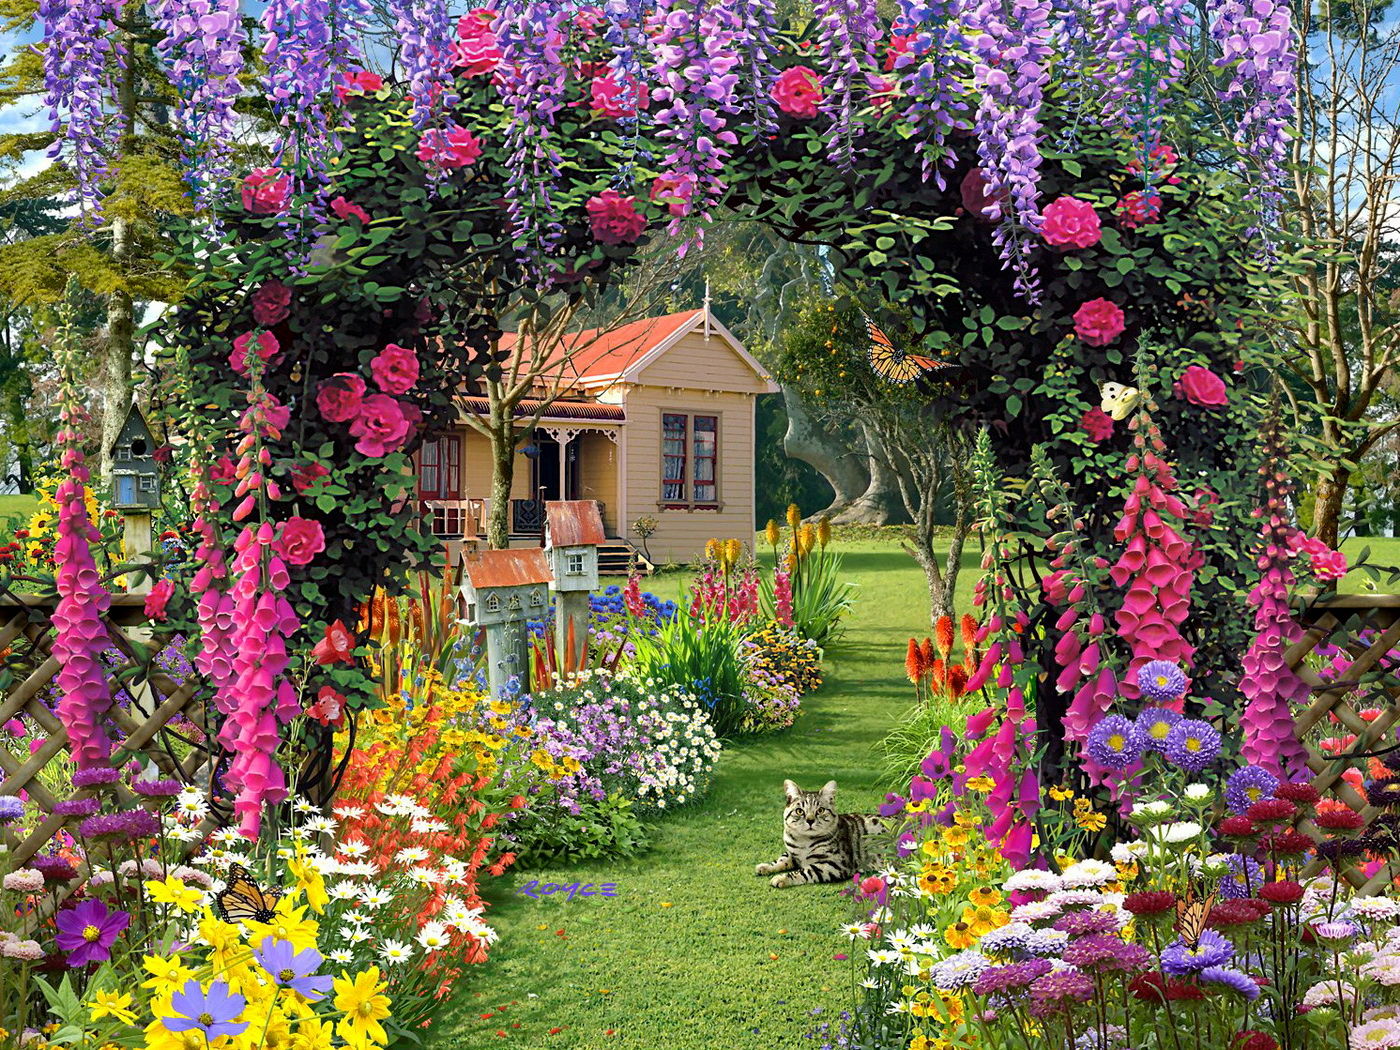 Wallpapers Fair Luxurious Flower Garden HD Widescreen Wallpaper 1400x1050